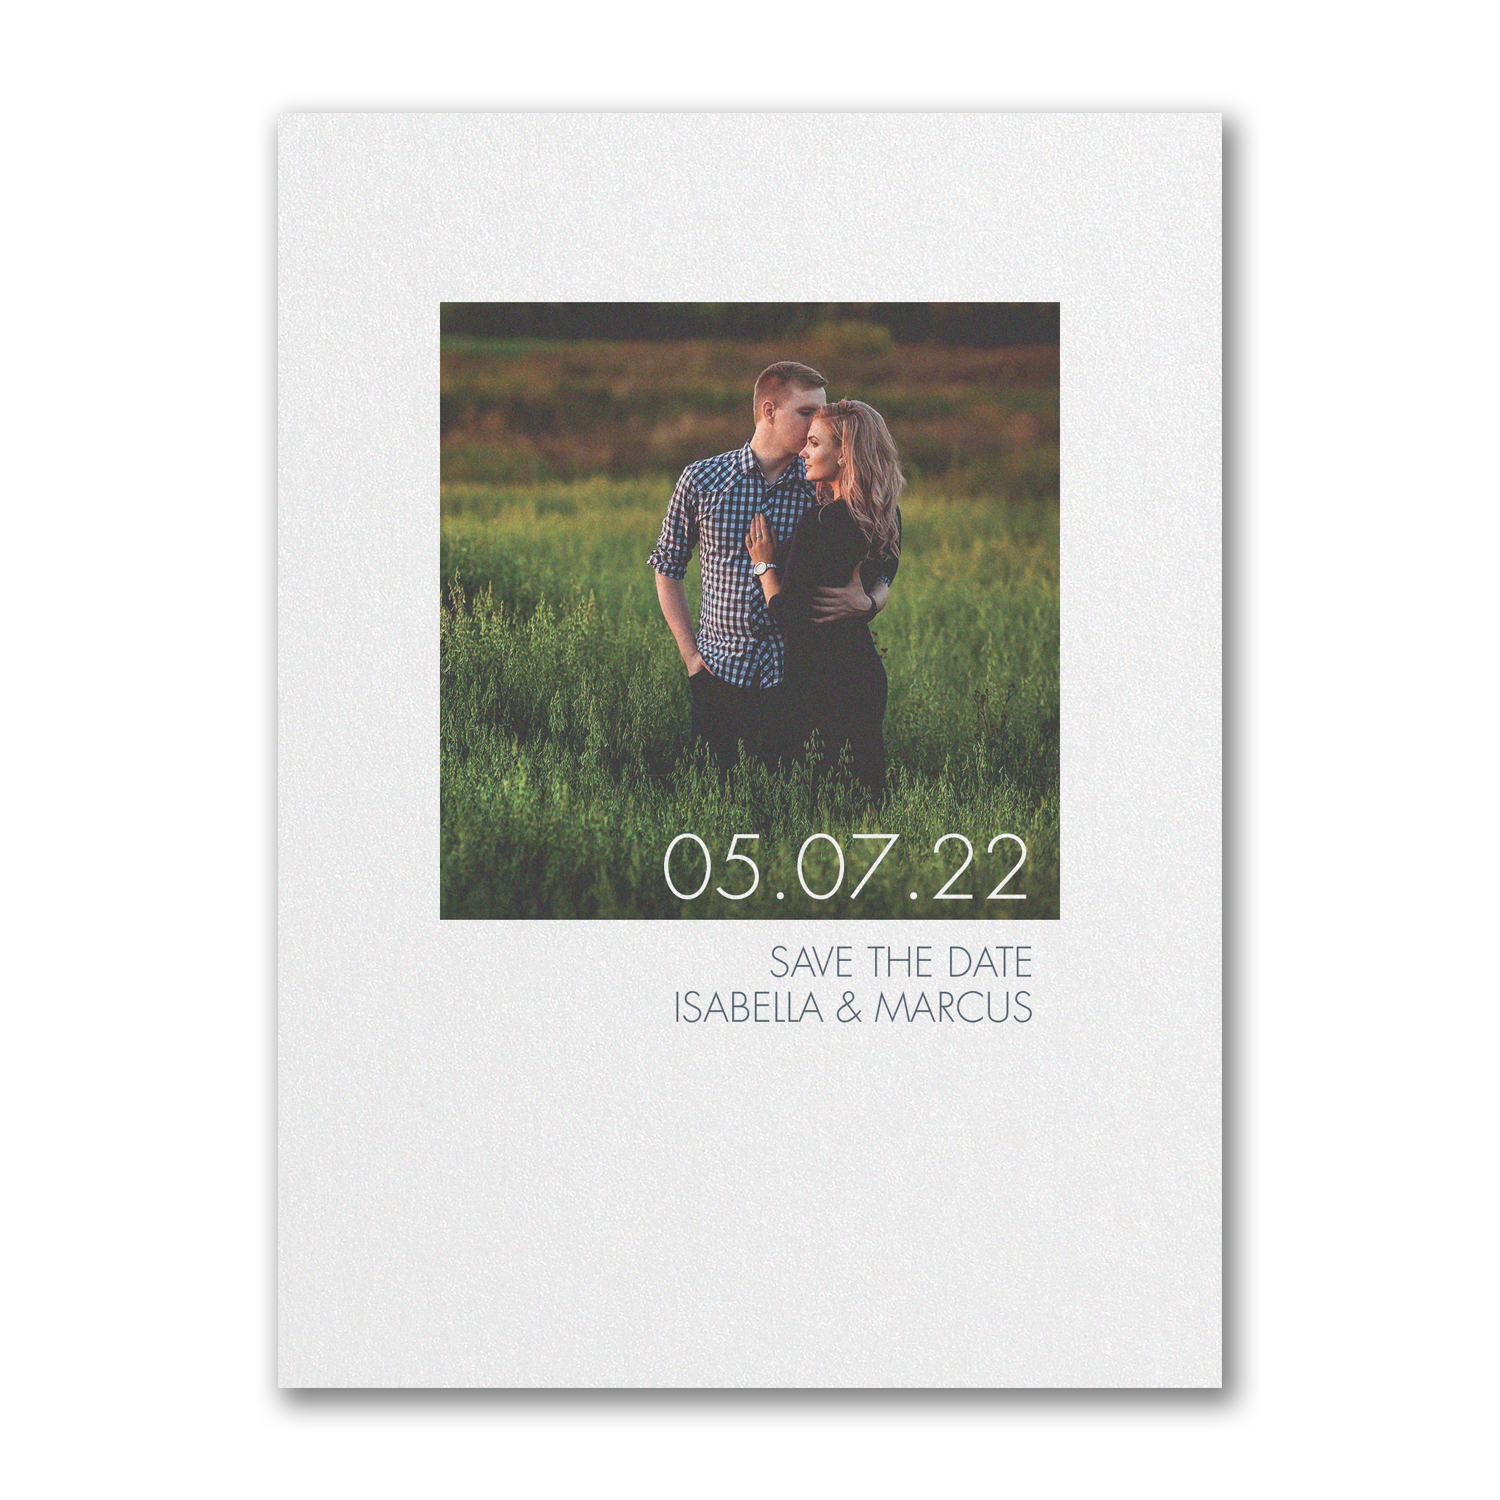 border love photo save the date card carlson craft